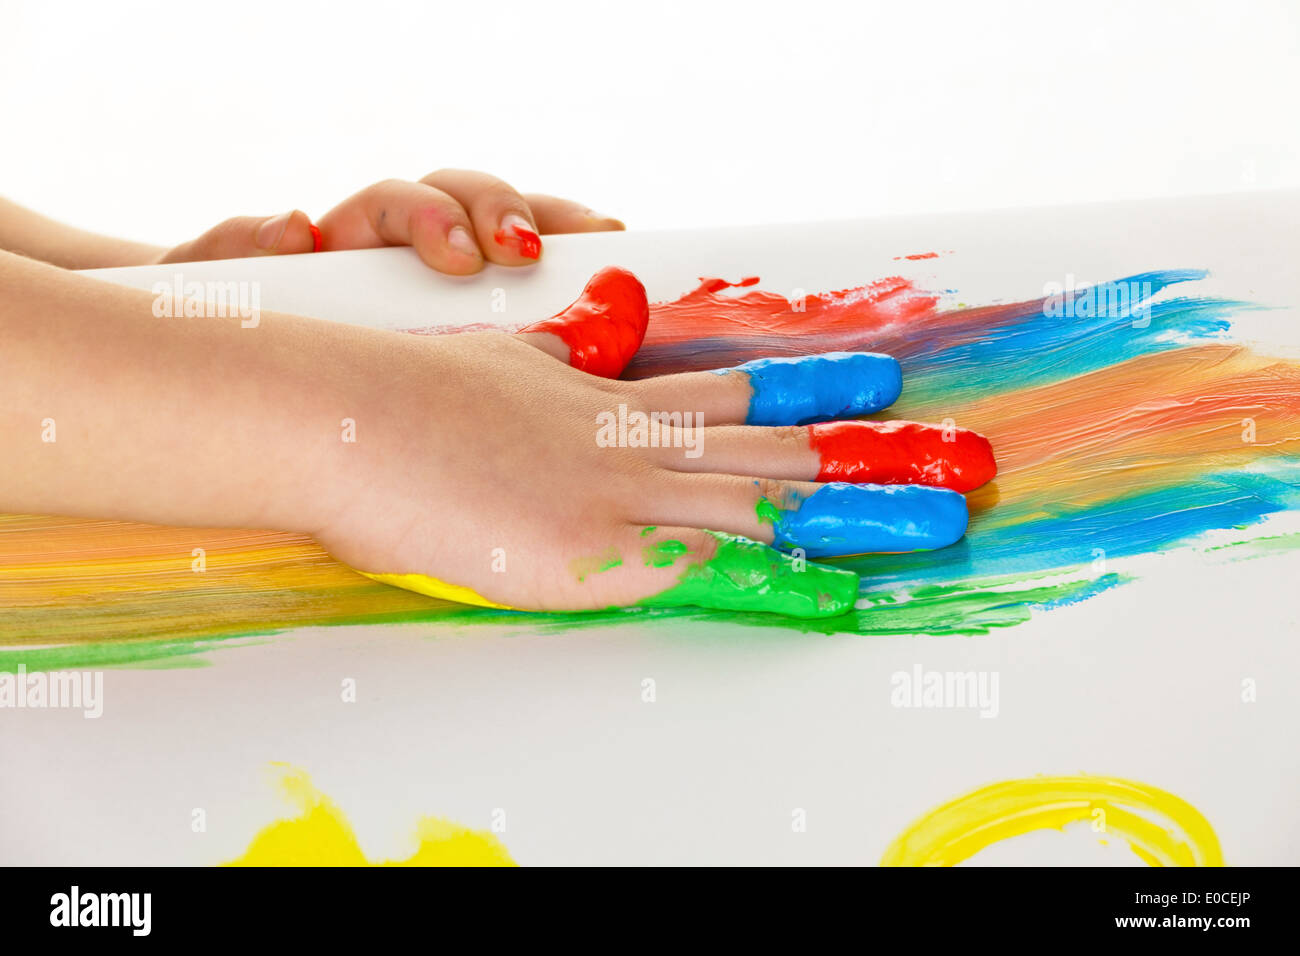 A small child paints with fingerpaints. Funnily and Creatively., Ein kleines Kind malt mit Fingerfarben. Lustig und Kreativ. - Stock Image